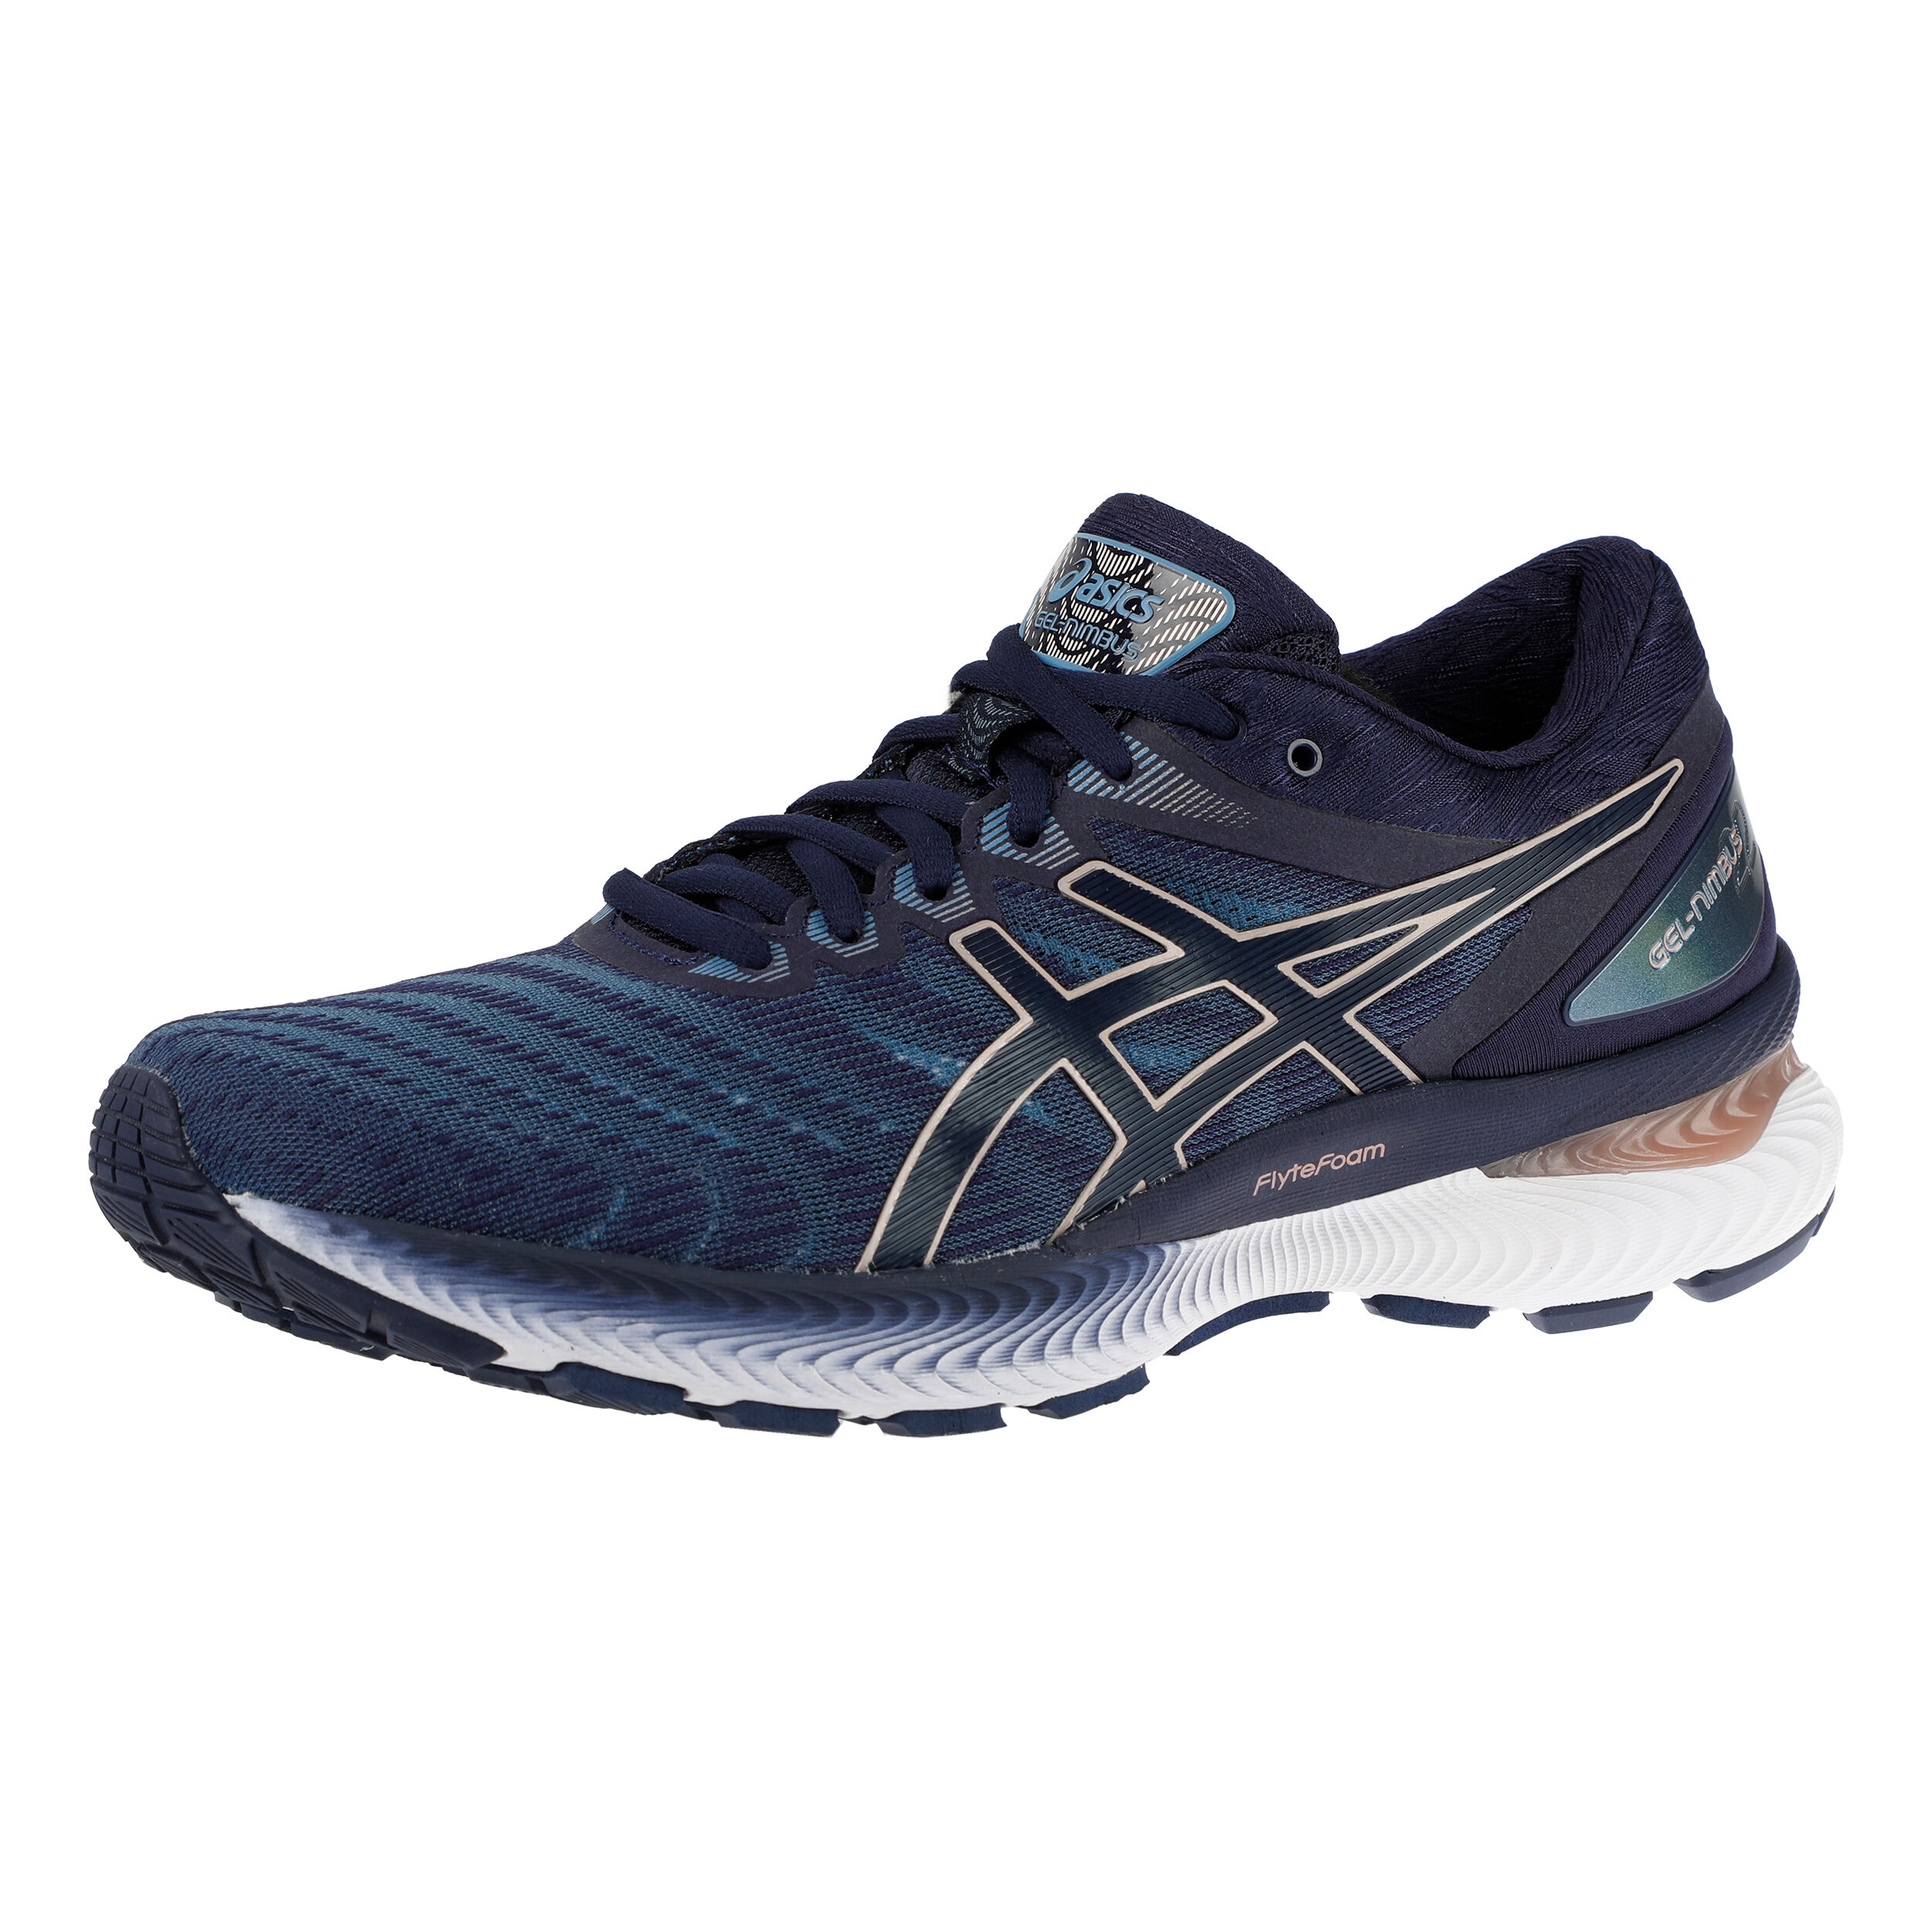 buy Asics Gel-Nimbus 22 Neutral Running Shoe Women - Dark ...